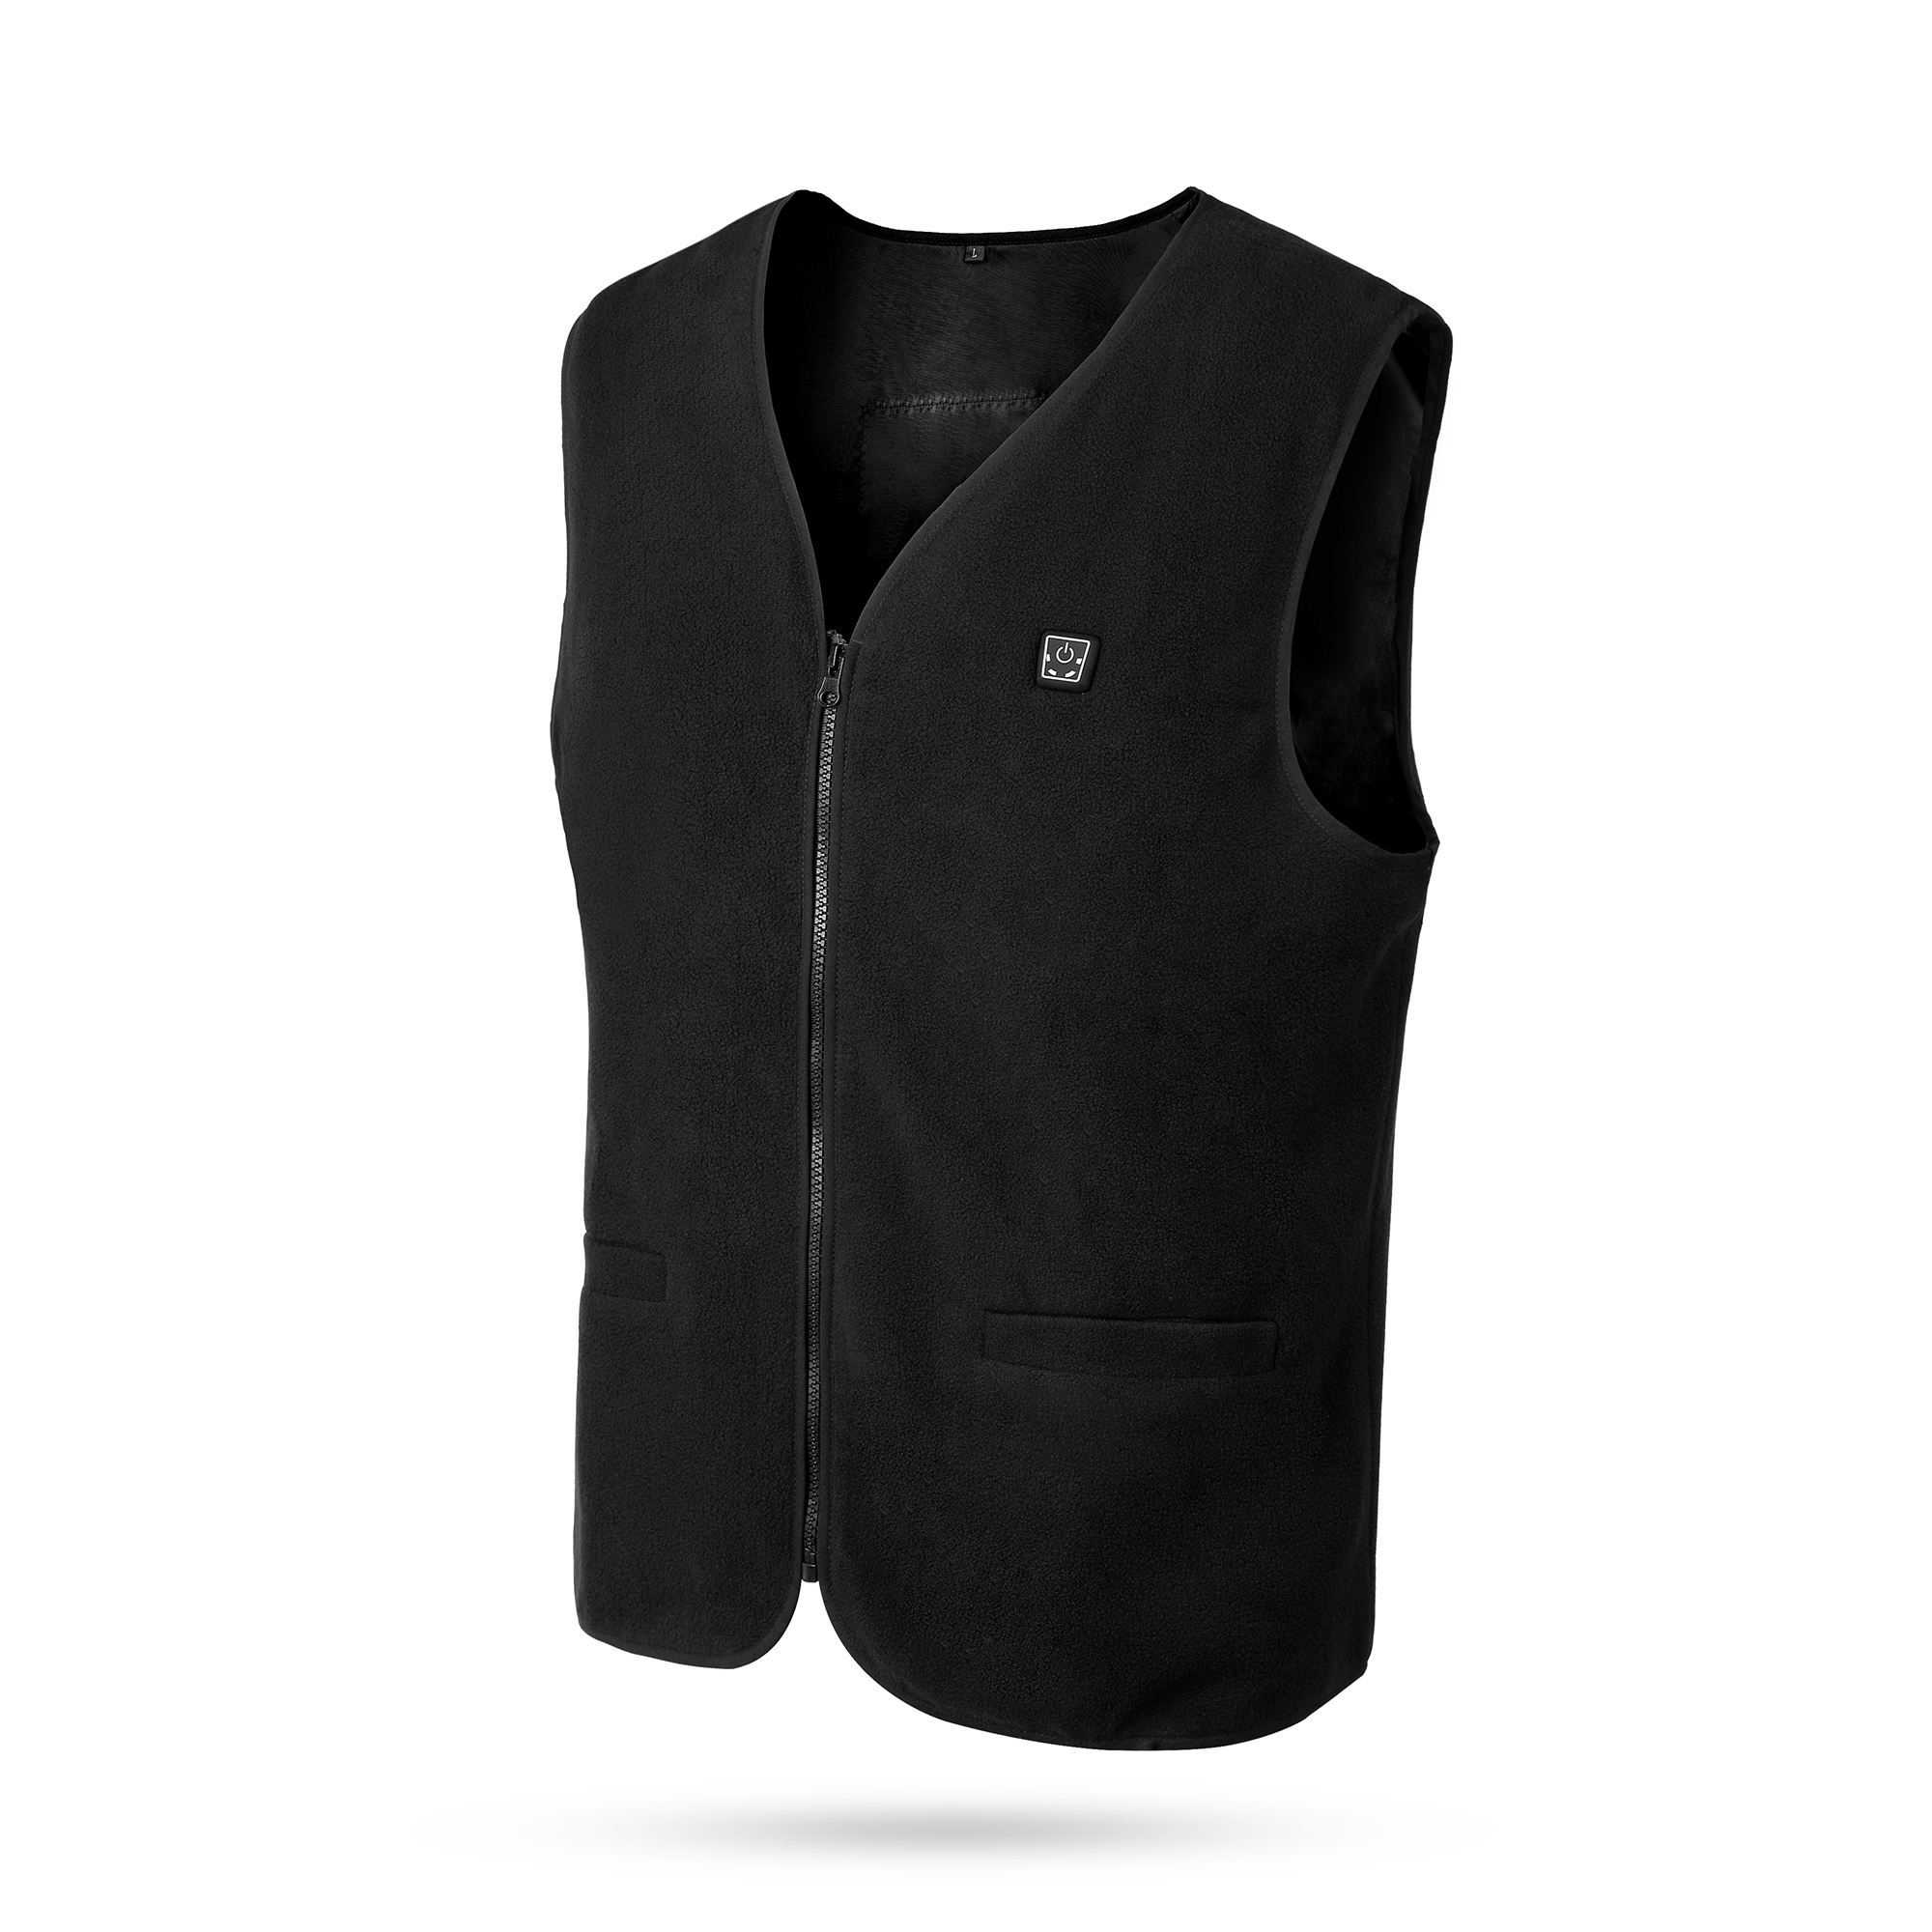 Manufacturers selling men's light weight far infrared usb heated vest for fishing hunting hiking